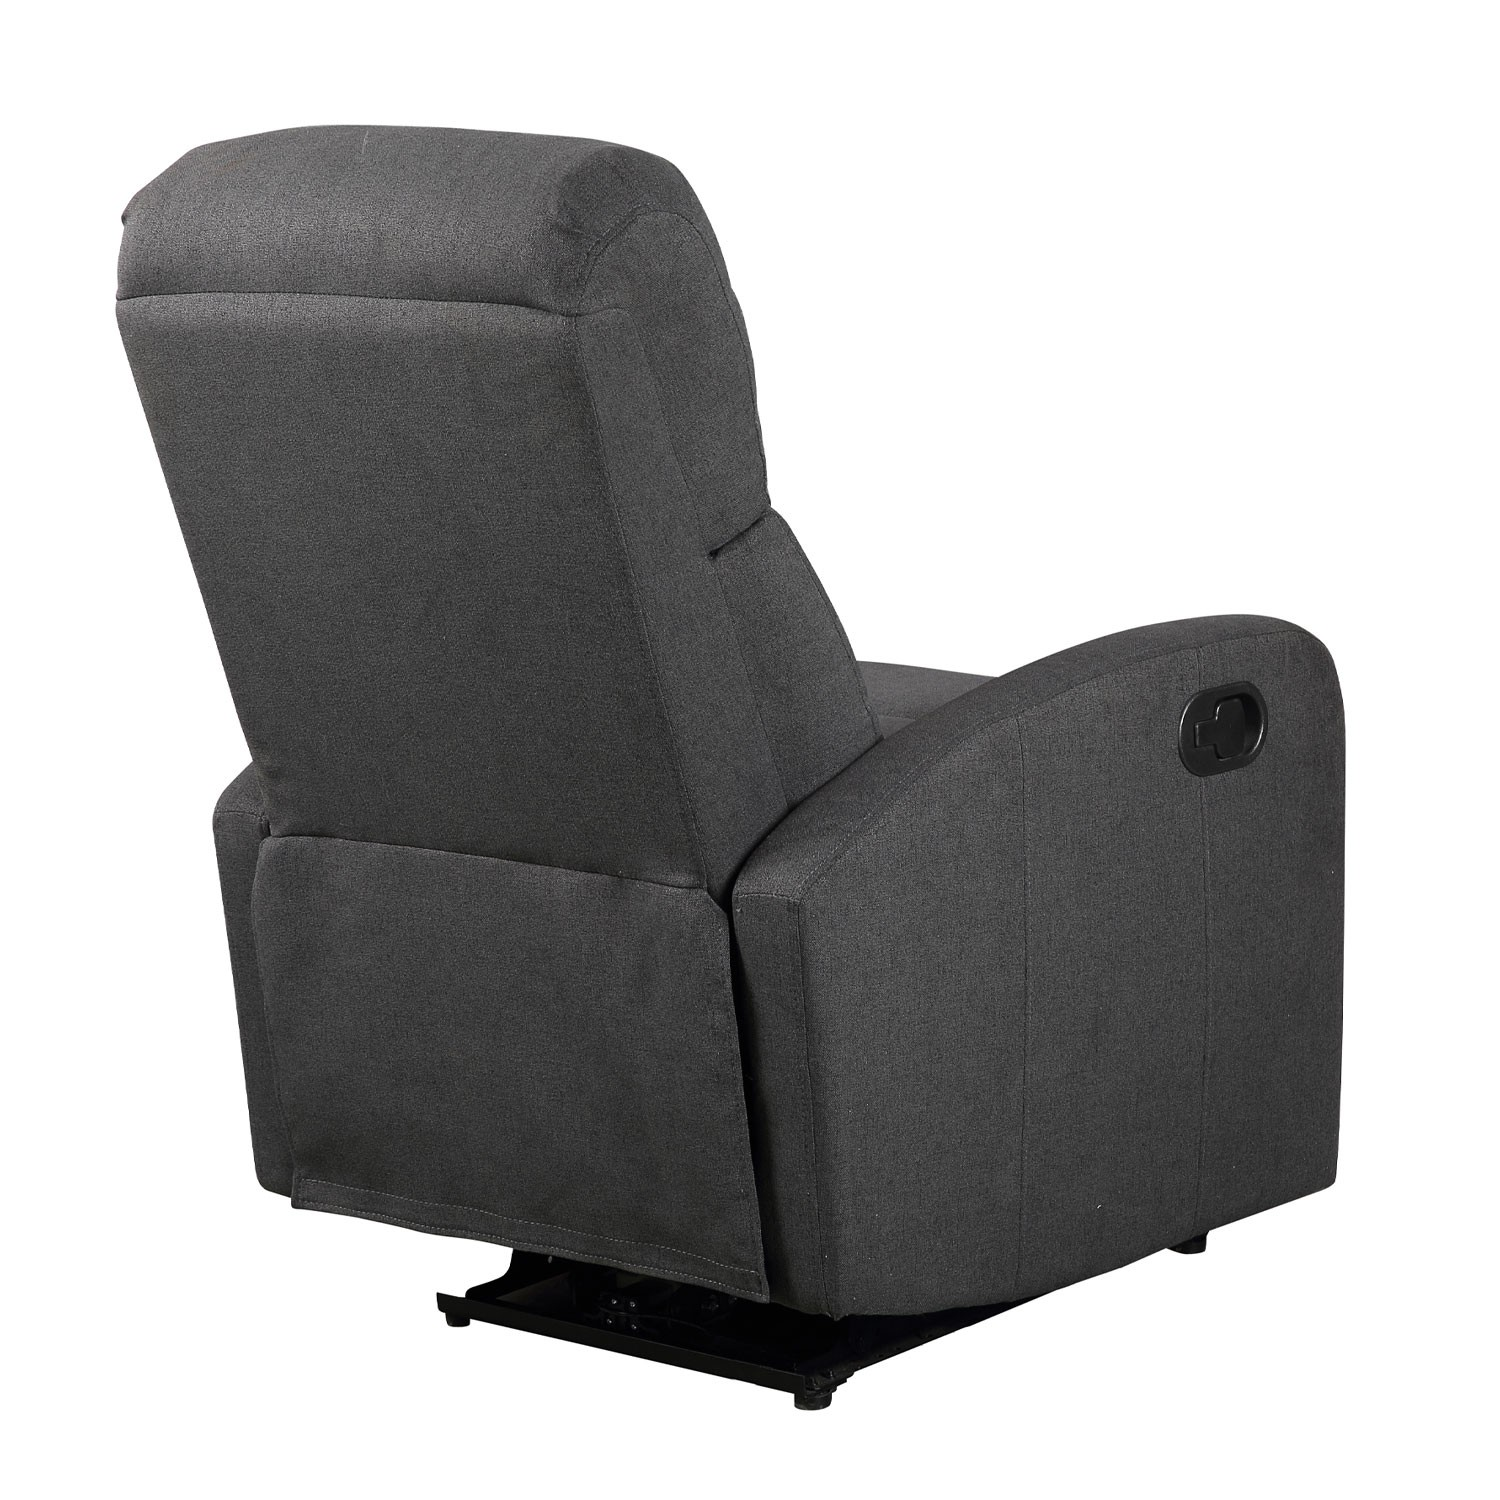 Fauteuil inclinable MAX gris anthracite